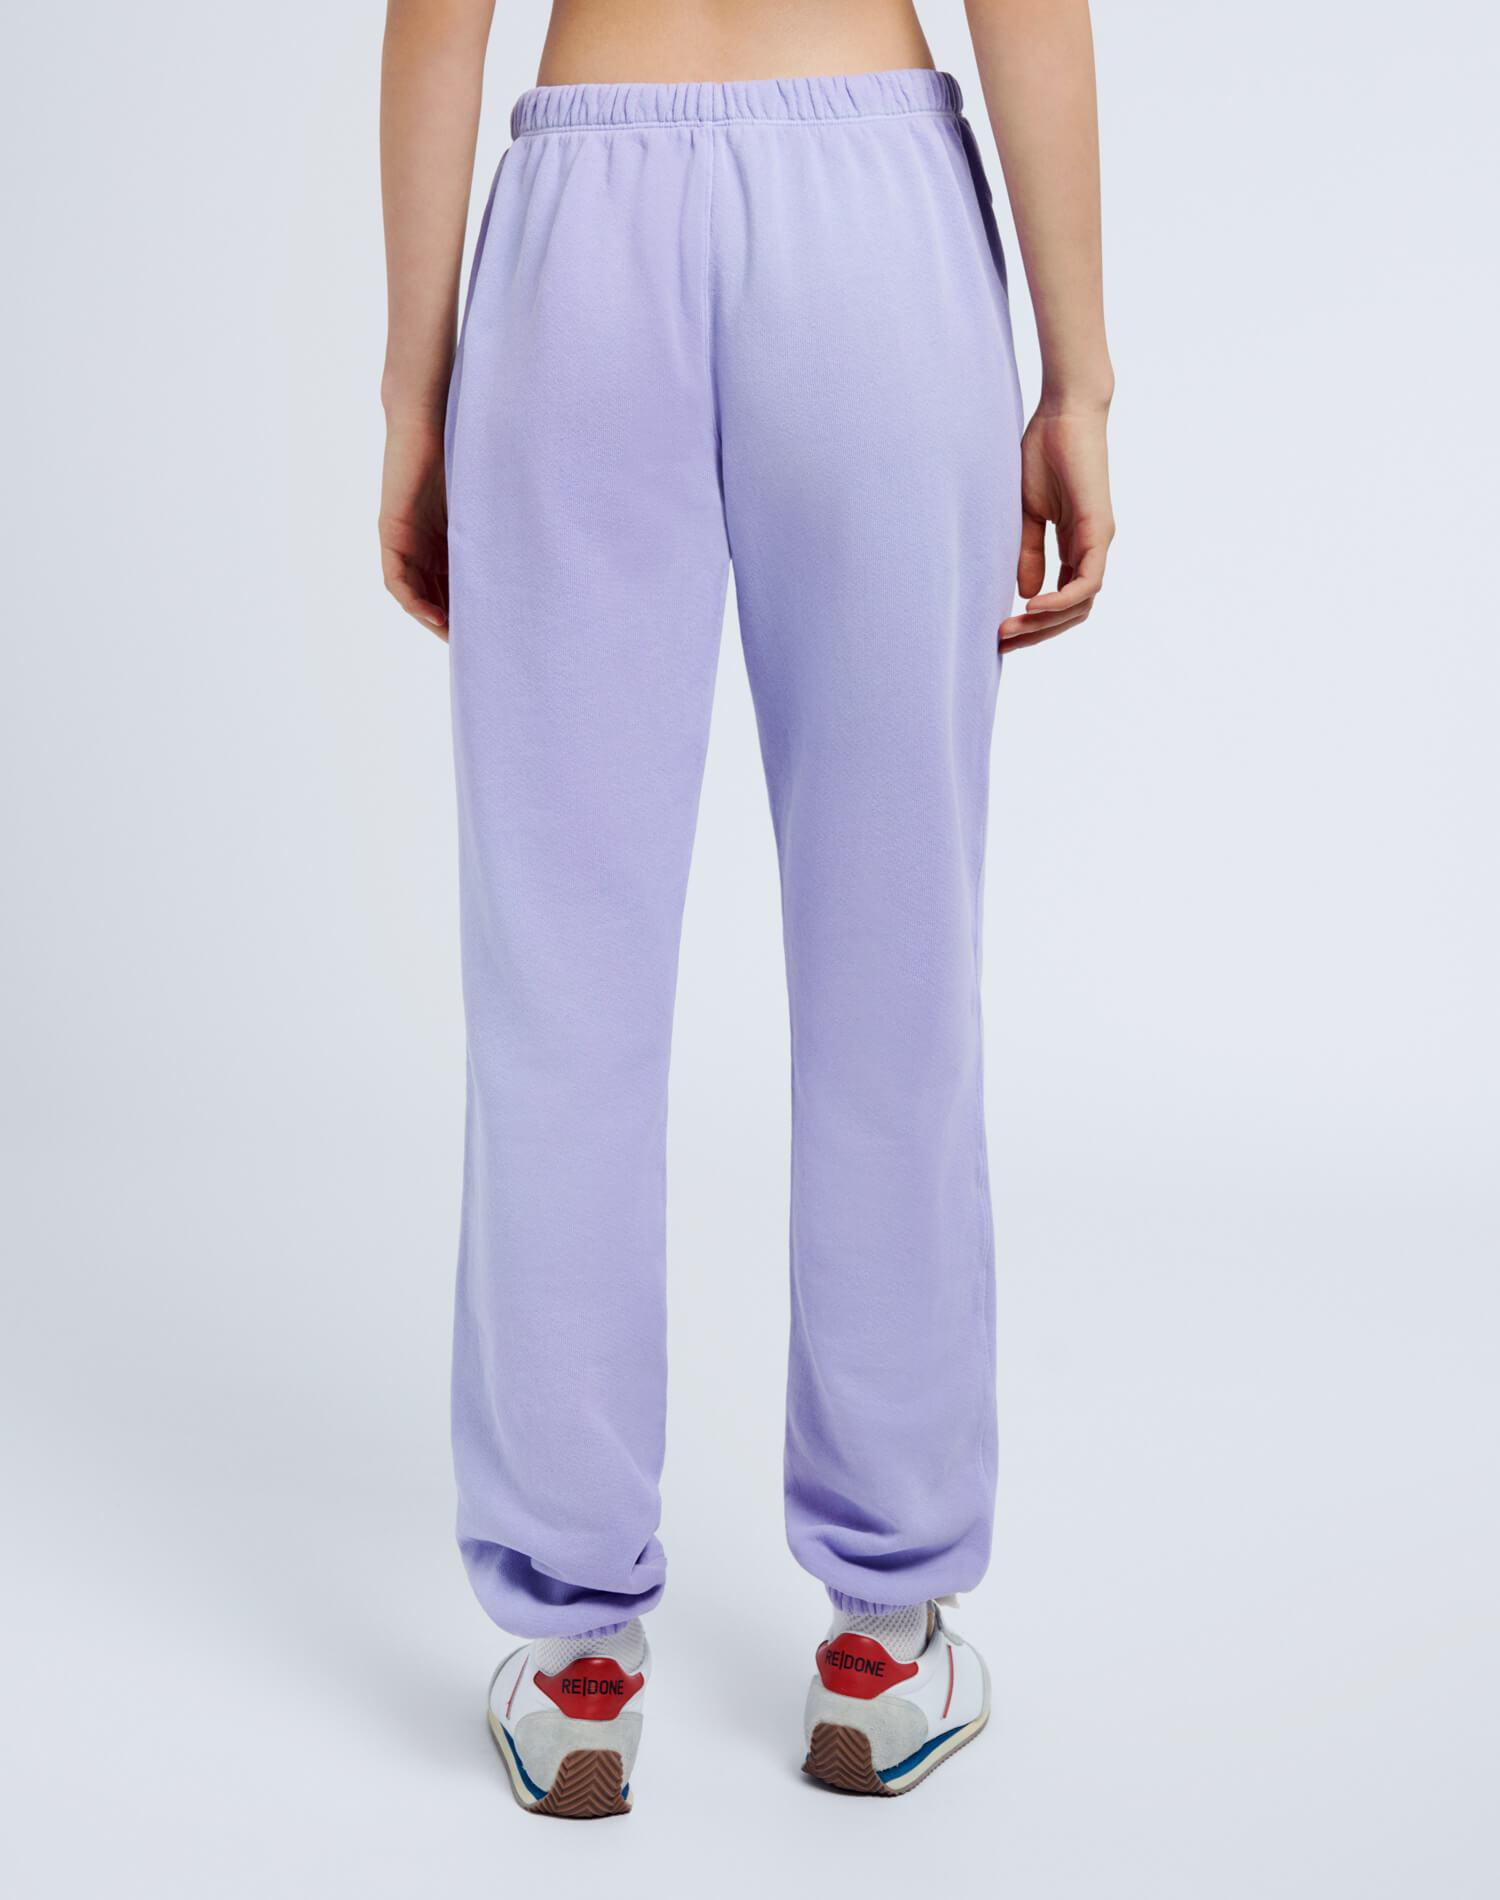 80s Sweatpant - Faded Orchid 3